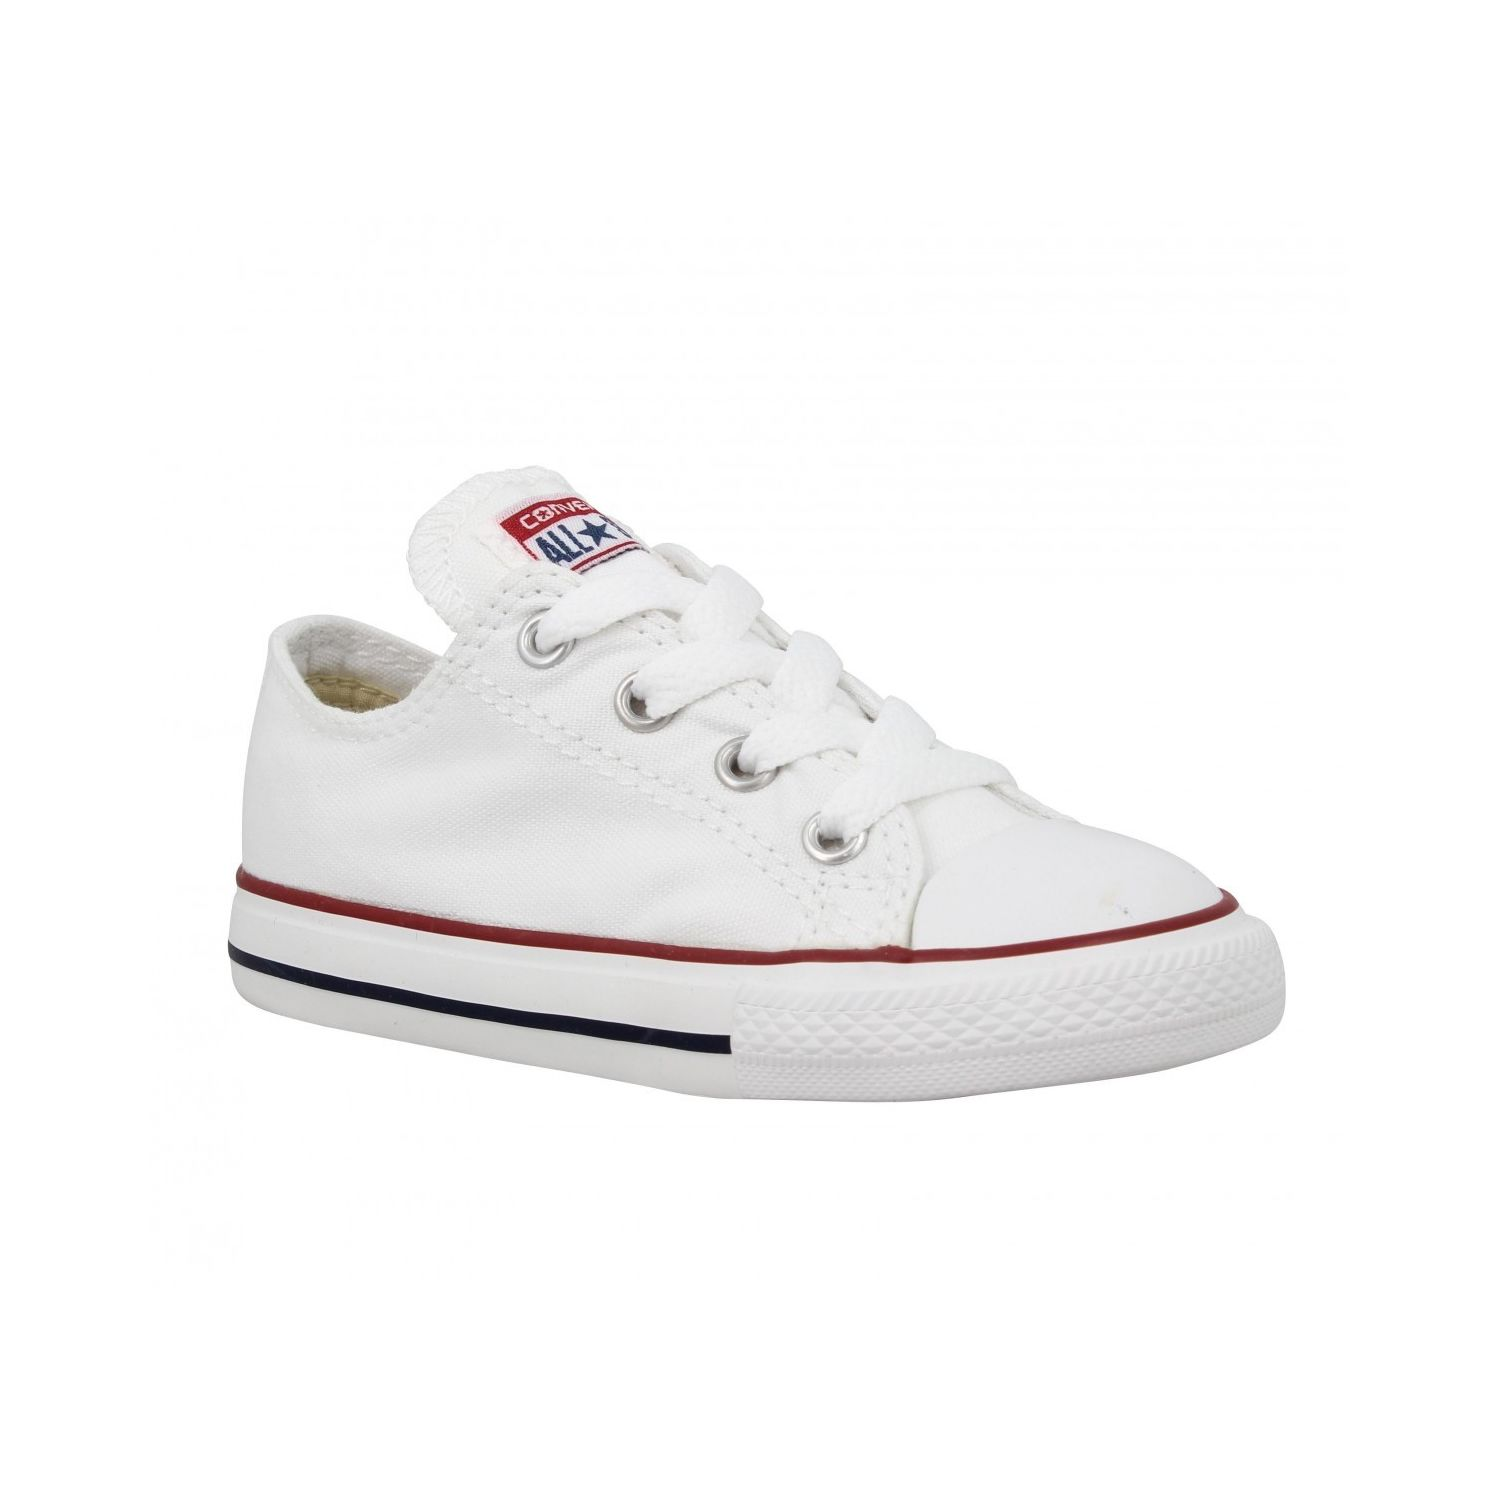 2f2e2fa18a935 CONTACT. converse chuck taylor 2 enfant orange